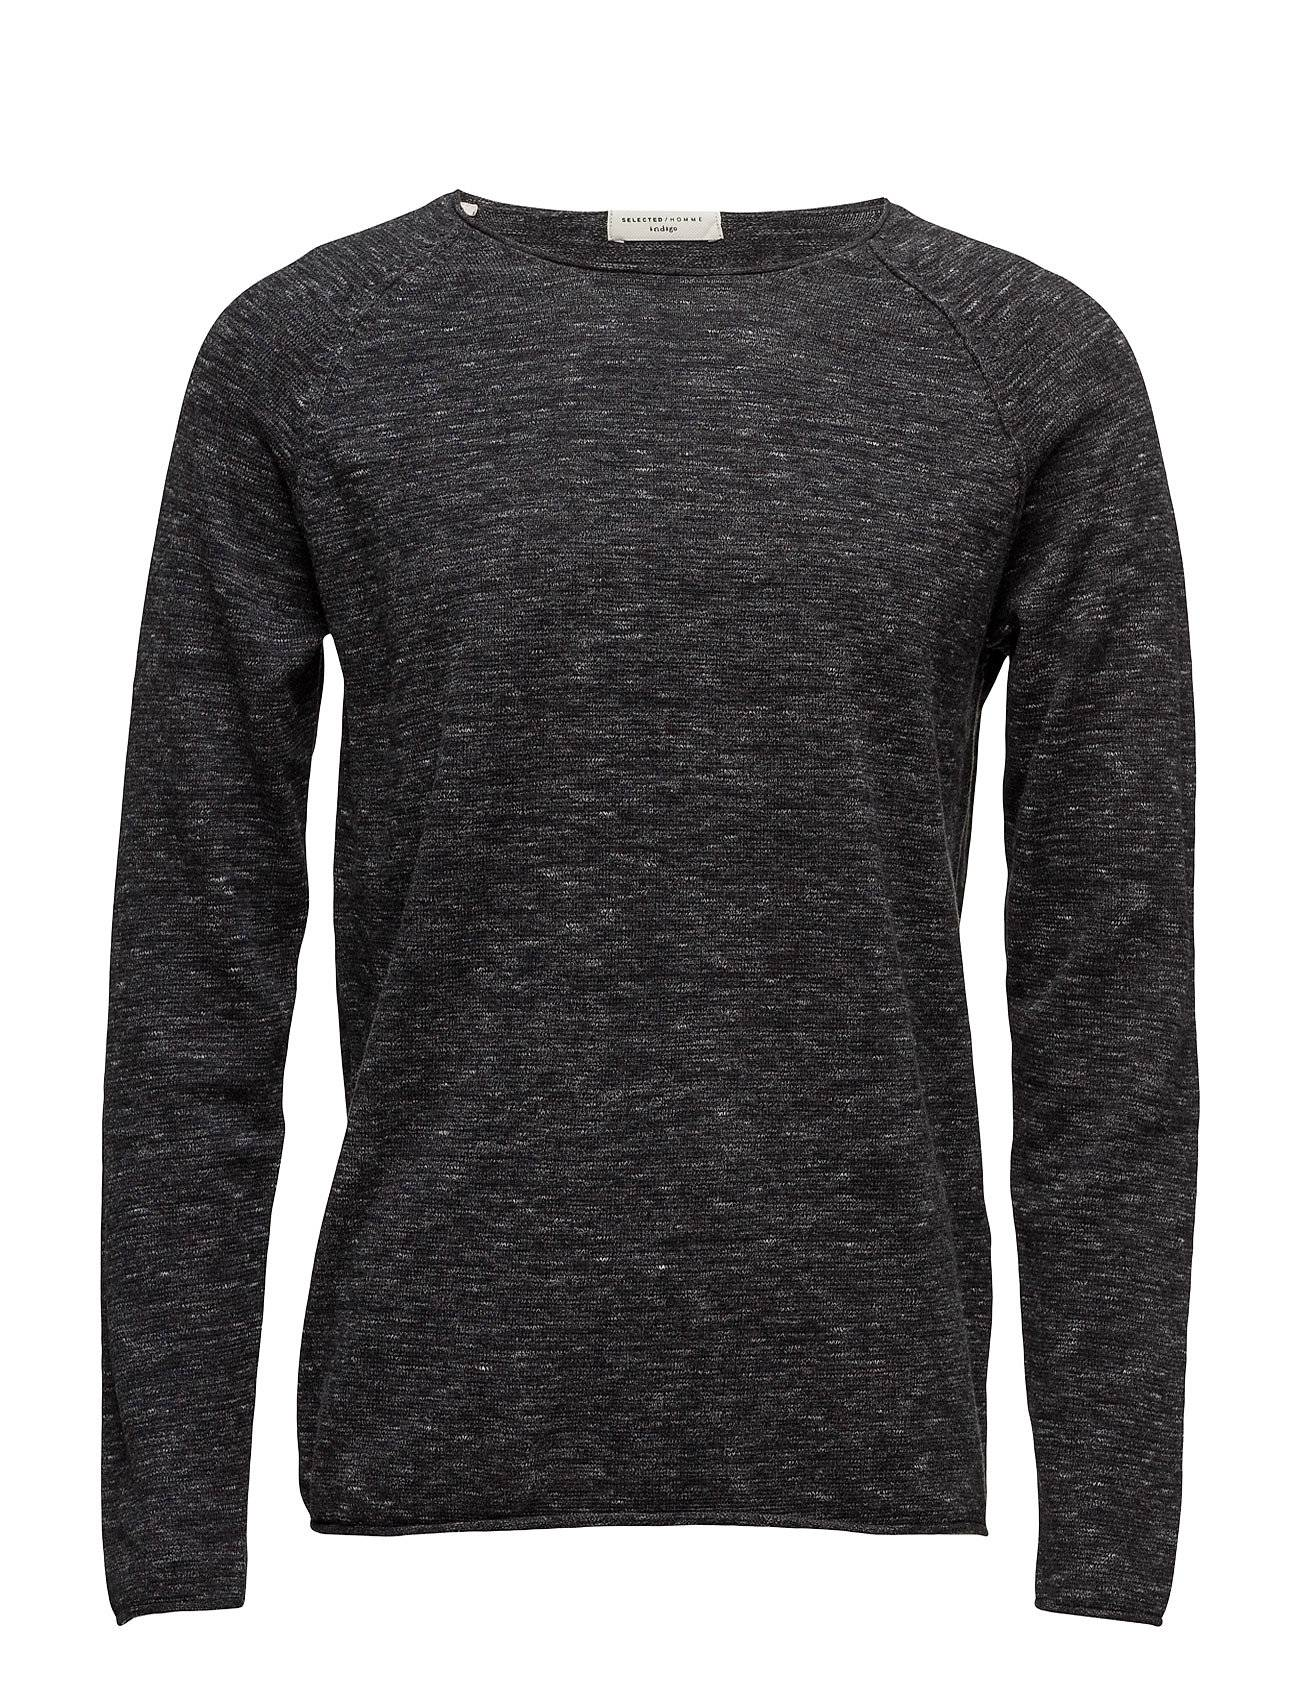 Selected Homme Shxclash Crew Neck